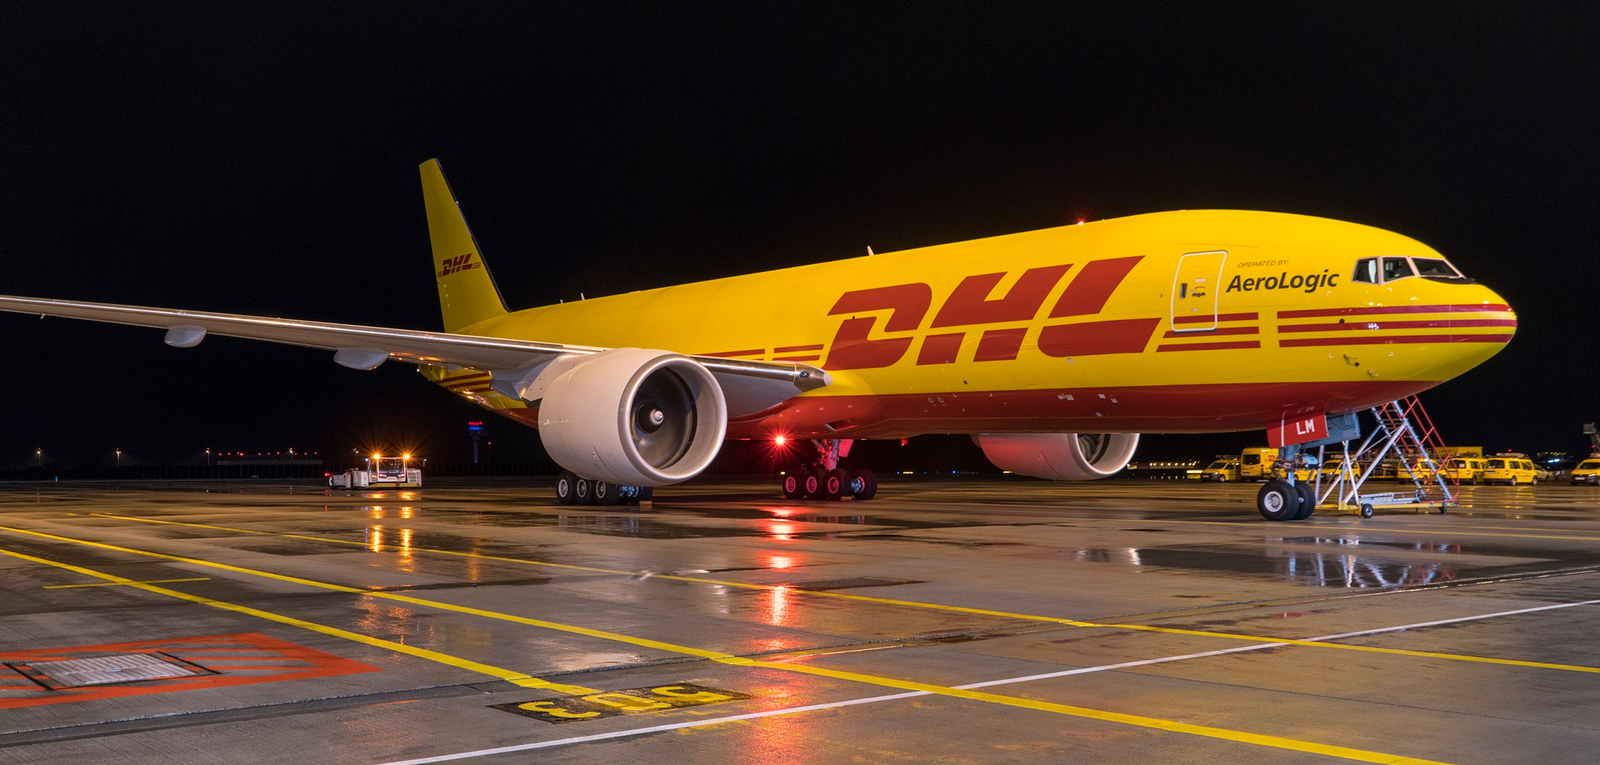 DHL is one of the shipping companies that Shiplink cooperates with. It is easy to send packages with DHL through our shipping service. You get a fixed price for your shipment. We take care of all the practicalities so that you have time for other things!